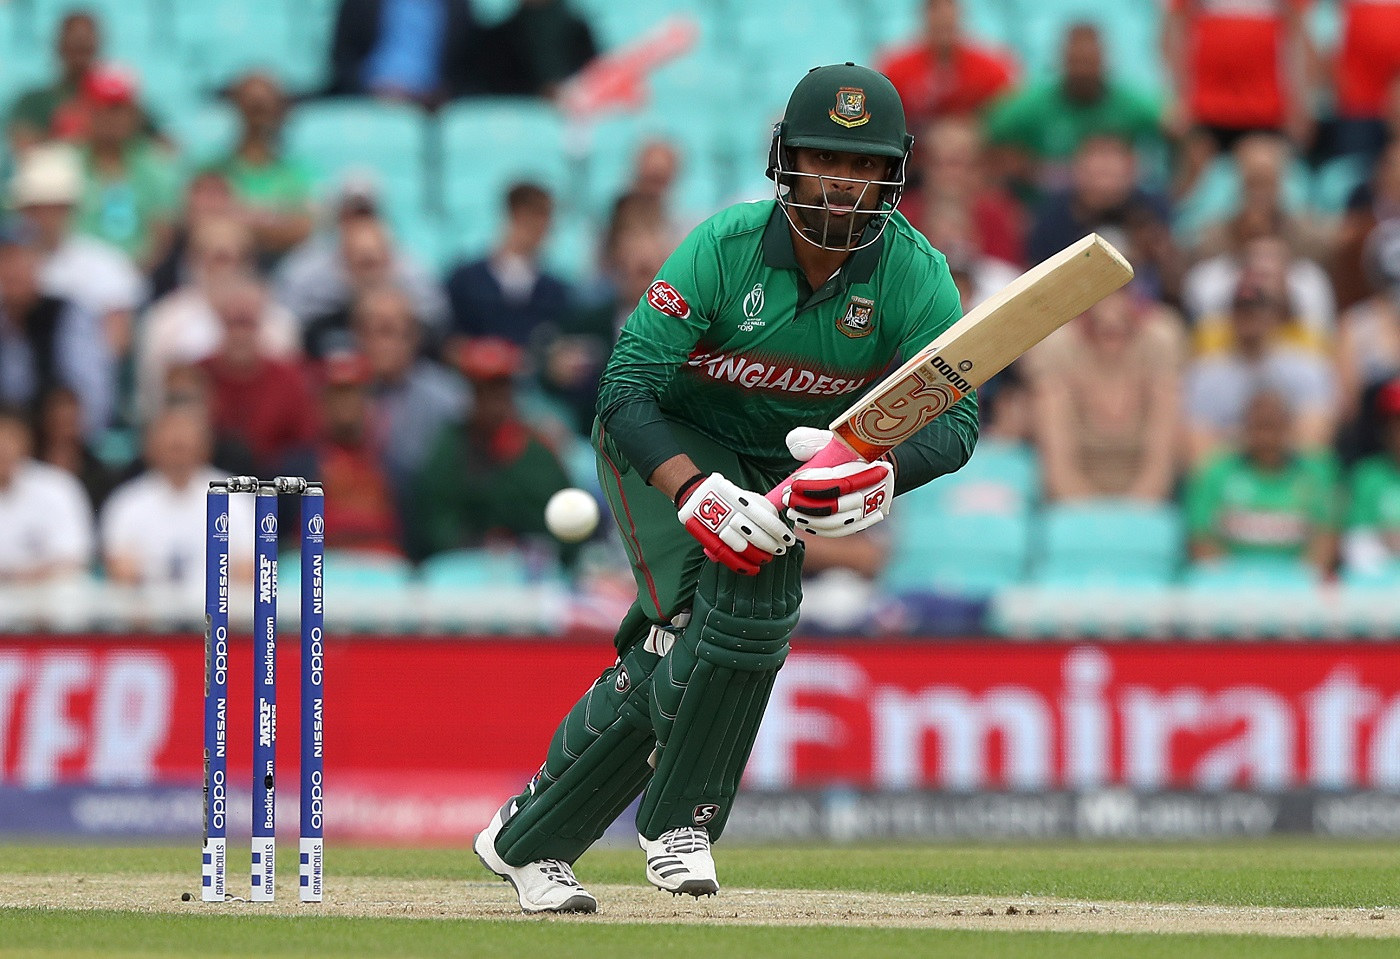 Tamim Iqbal reveals which Pakistan player he was a big fan of growing up